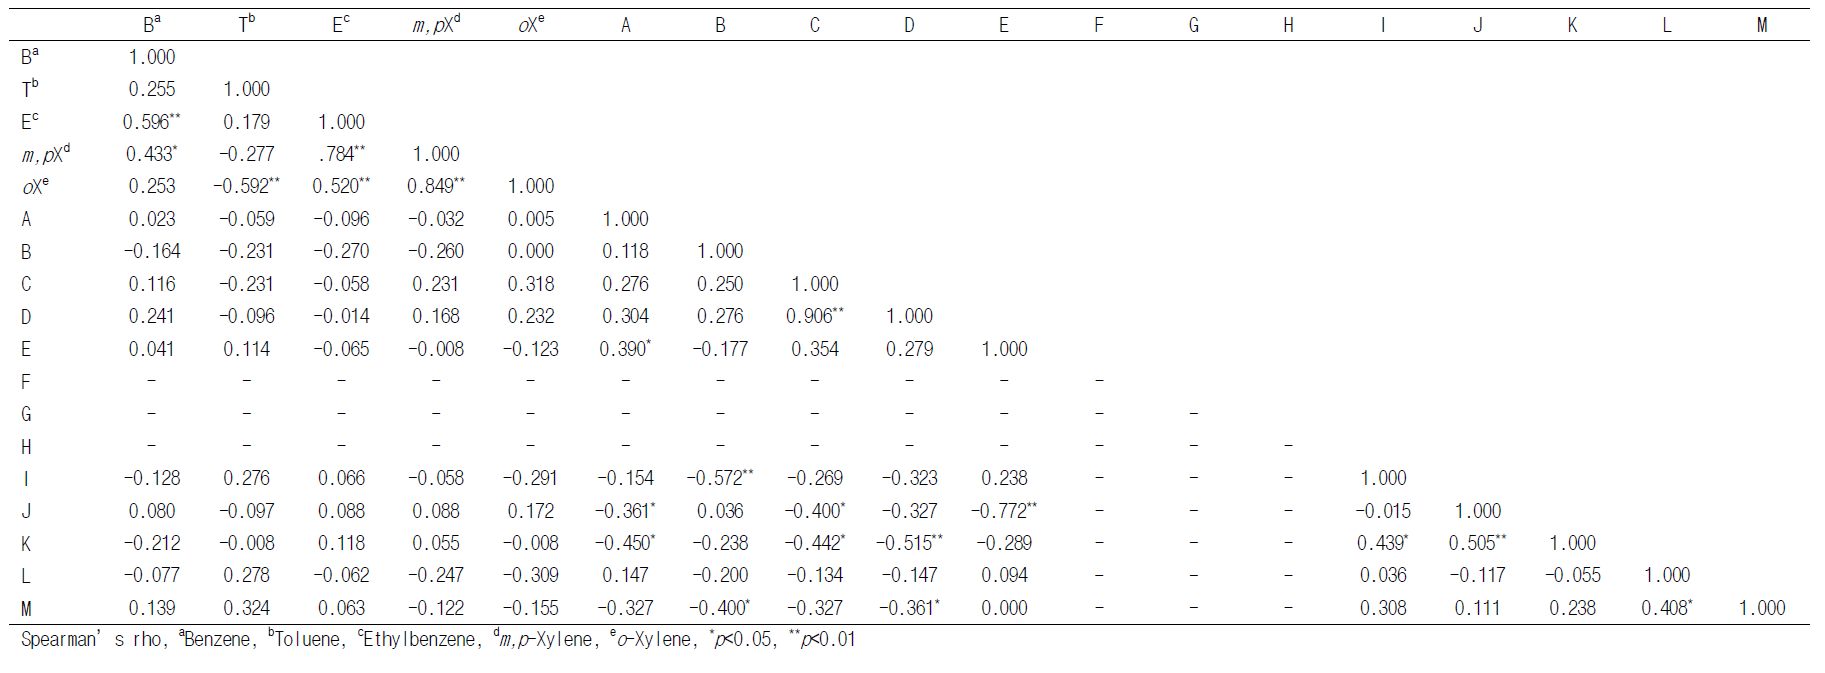 Correlation between diseases related questionnaire items and VOCs